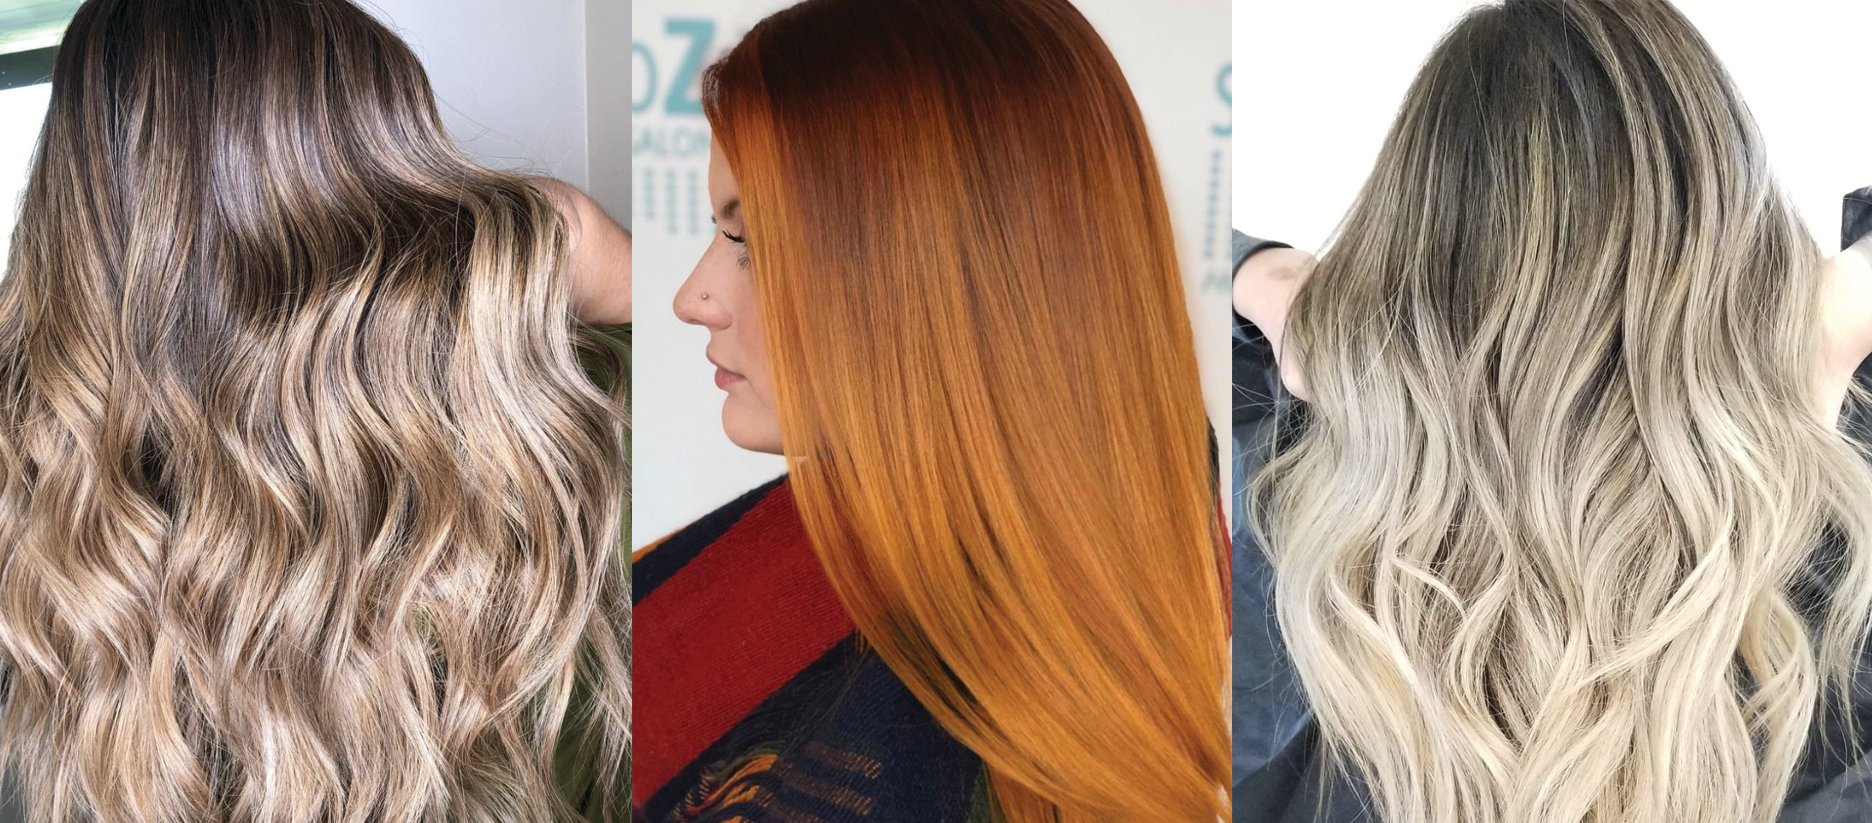 WINTER TRENDS: SHADOW ROOTS & COLOR MELTS